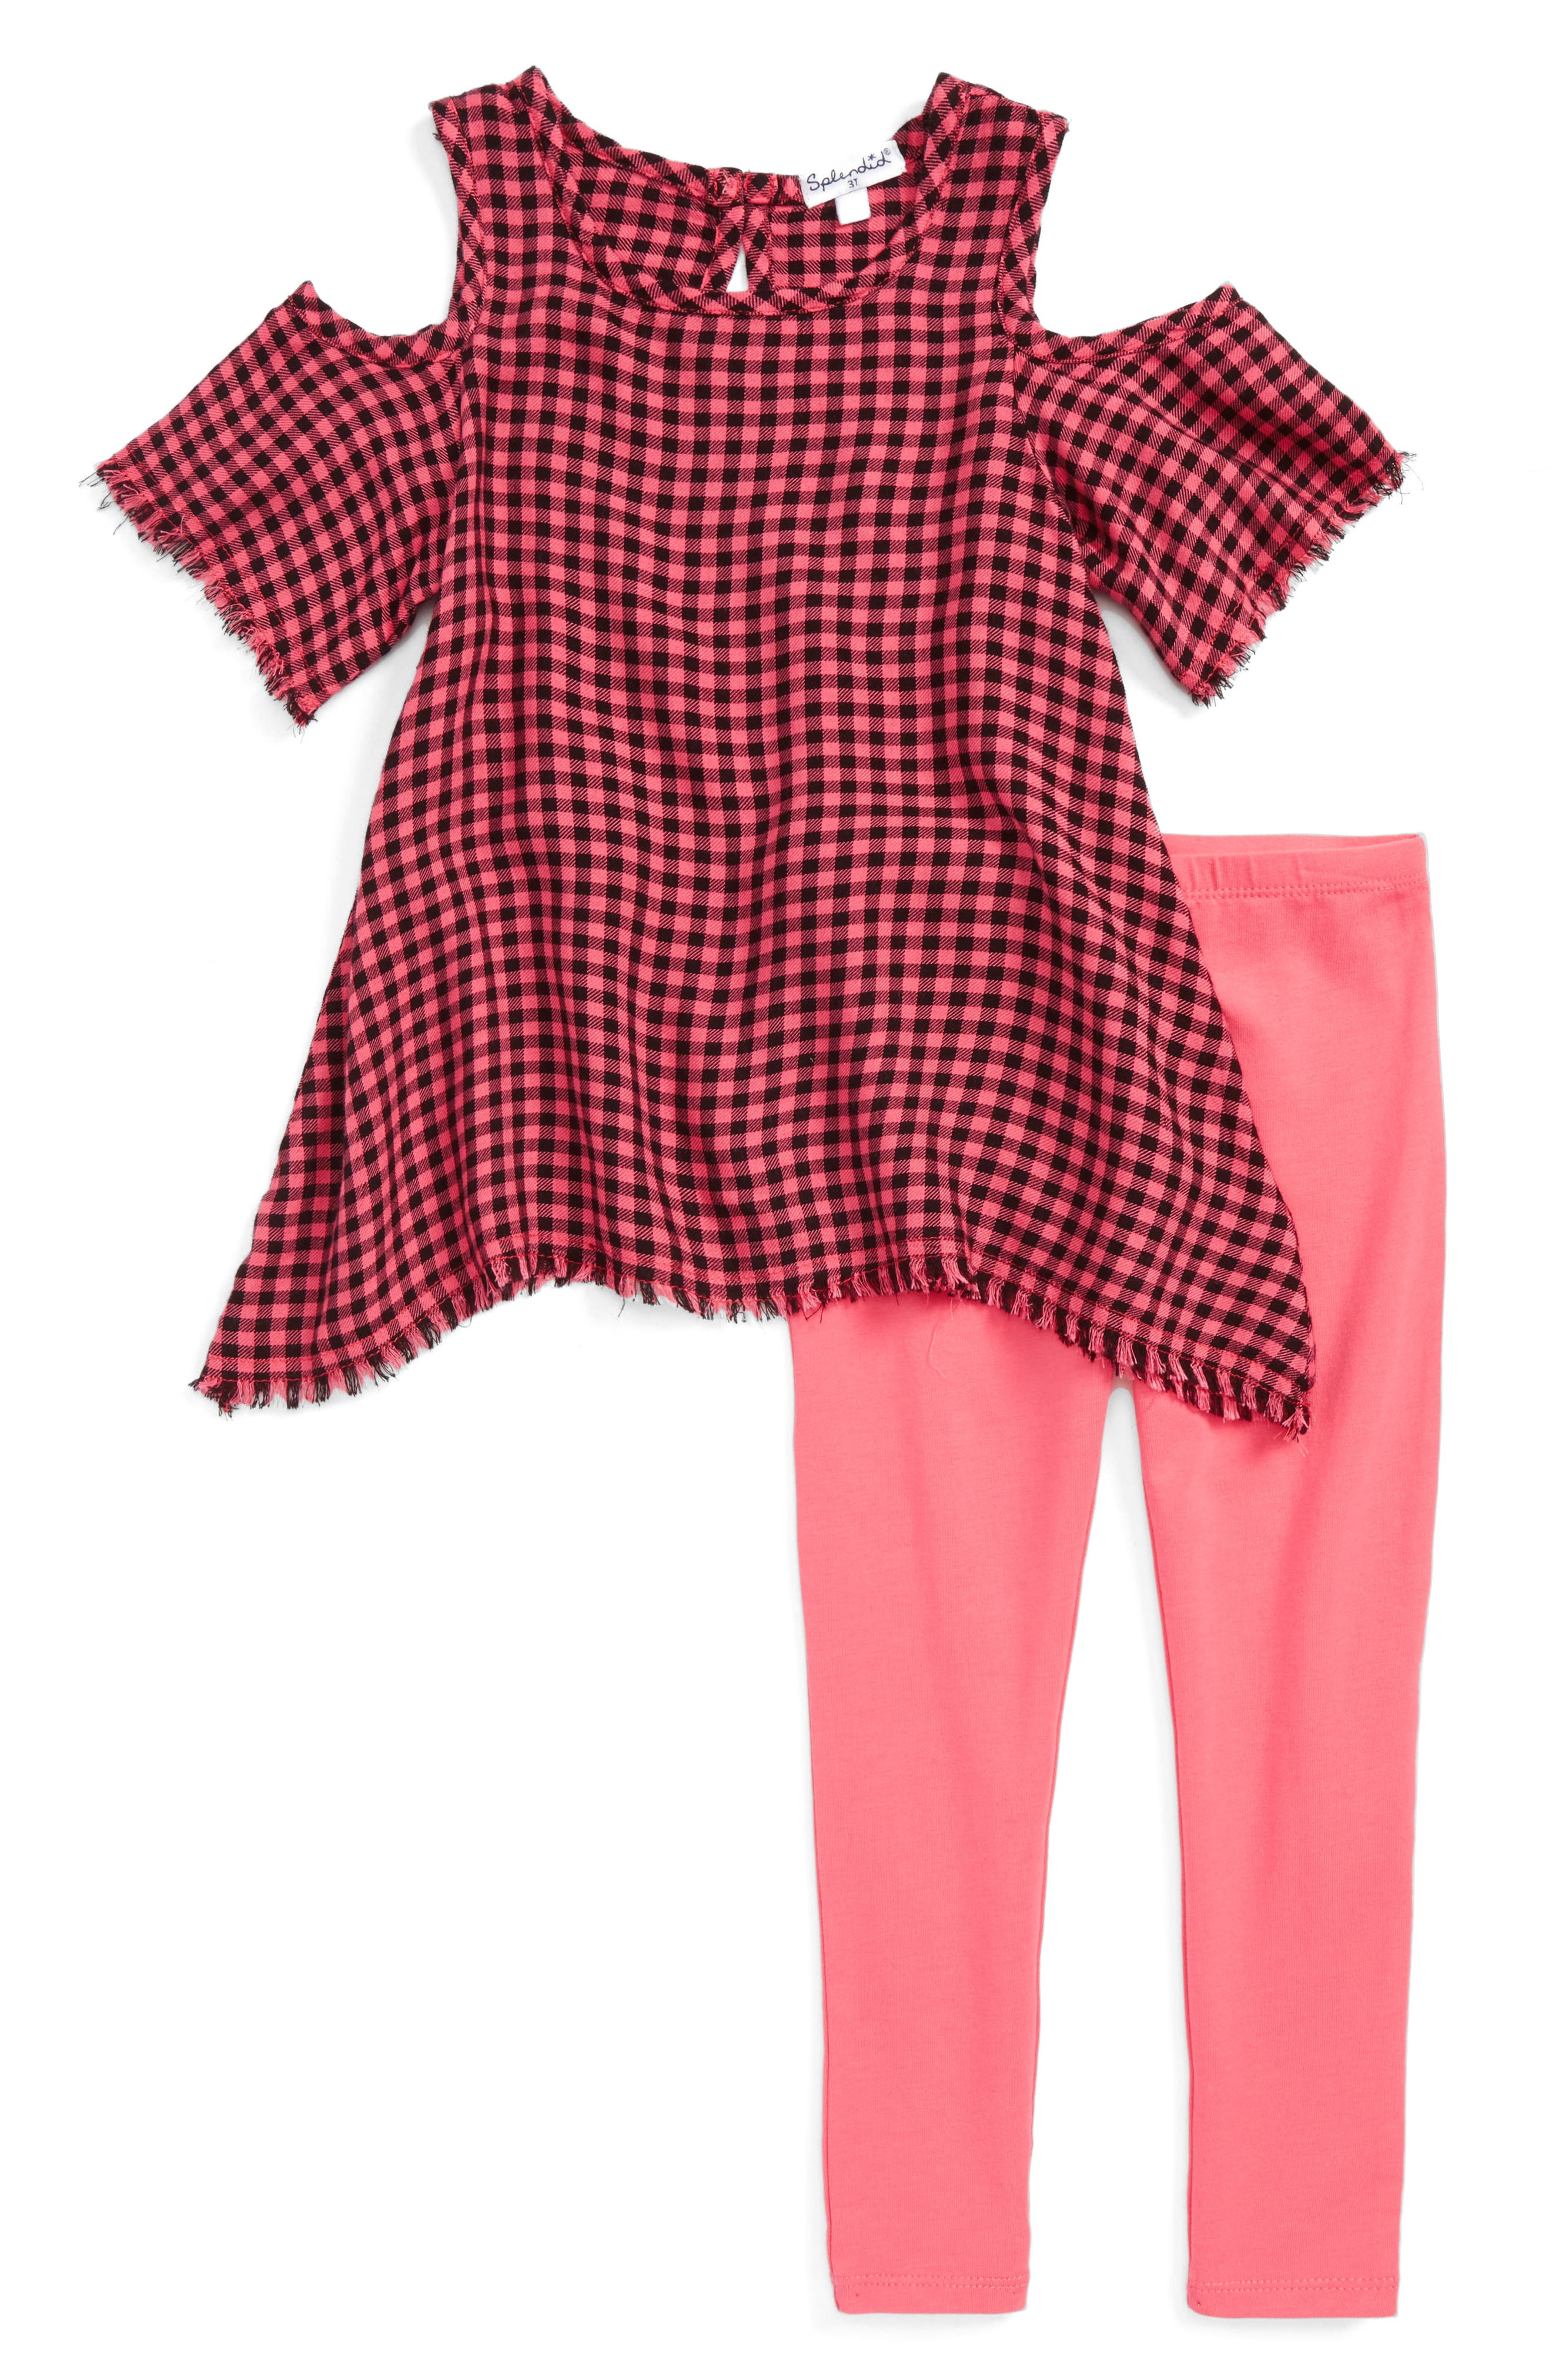 Main Image - Splendid Plaid Top & Leggings Set (Baby Girls)